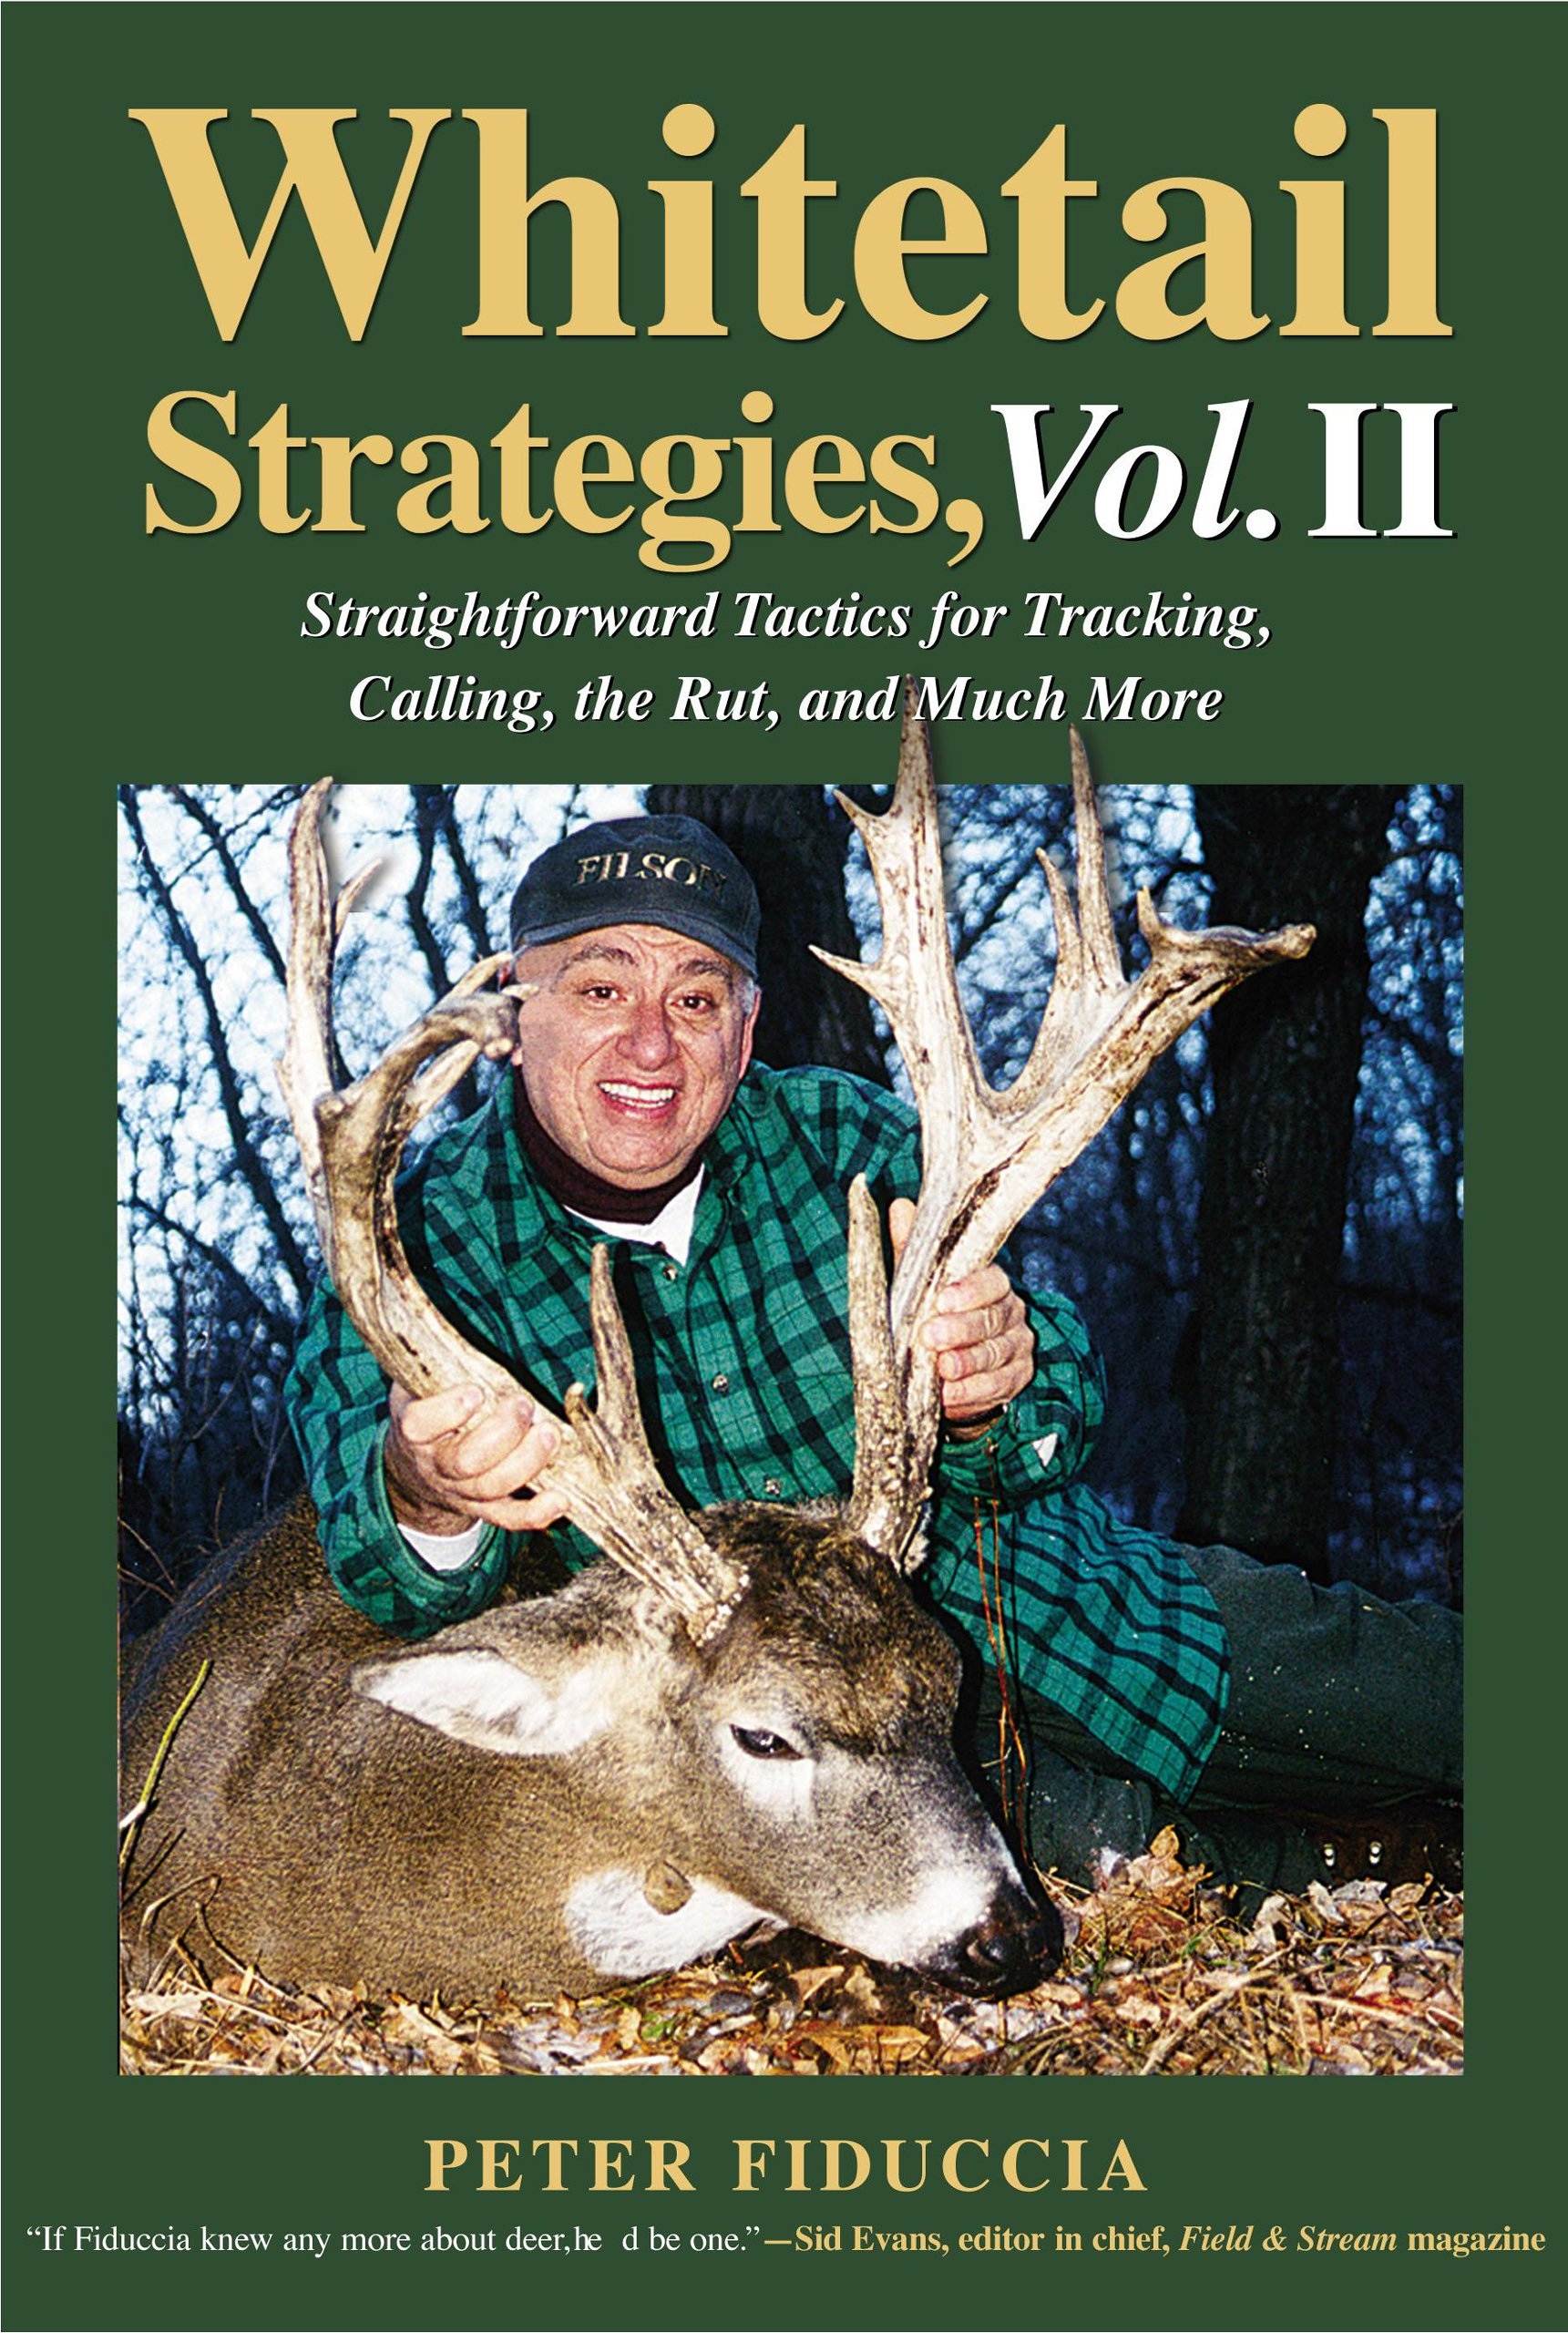 Whitetail Strategies, Vol. II: Straightforward Tactics for Tracking, Calling, the Rut, and Much More pdf